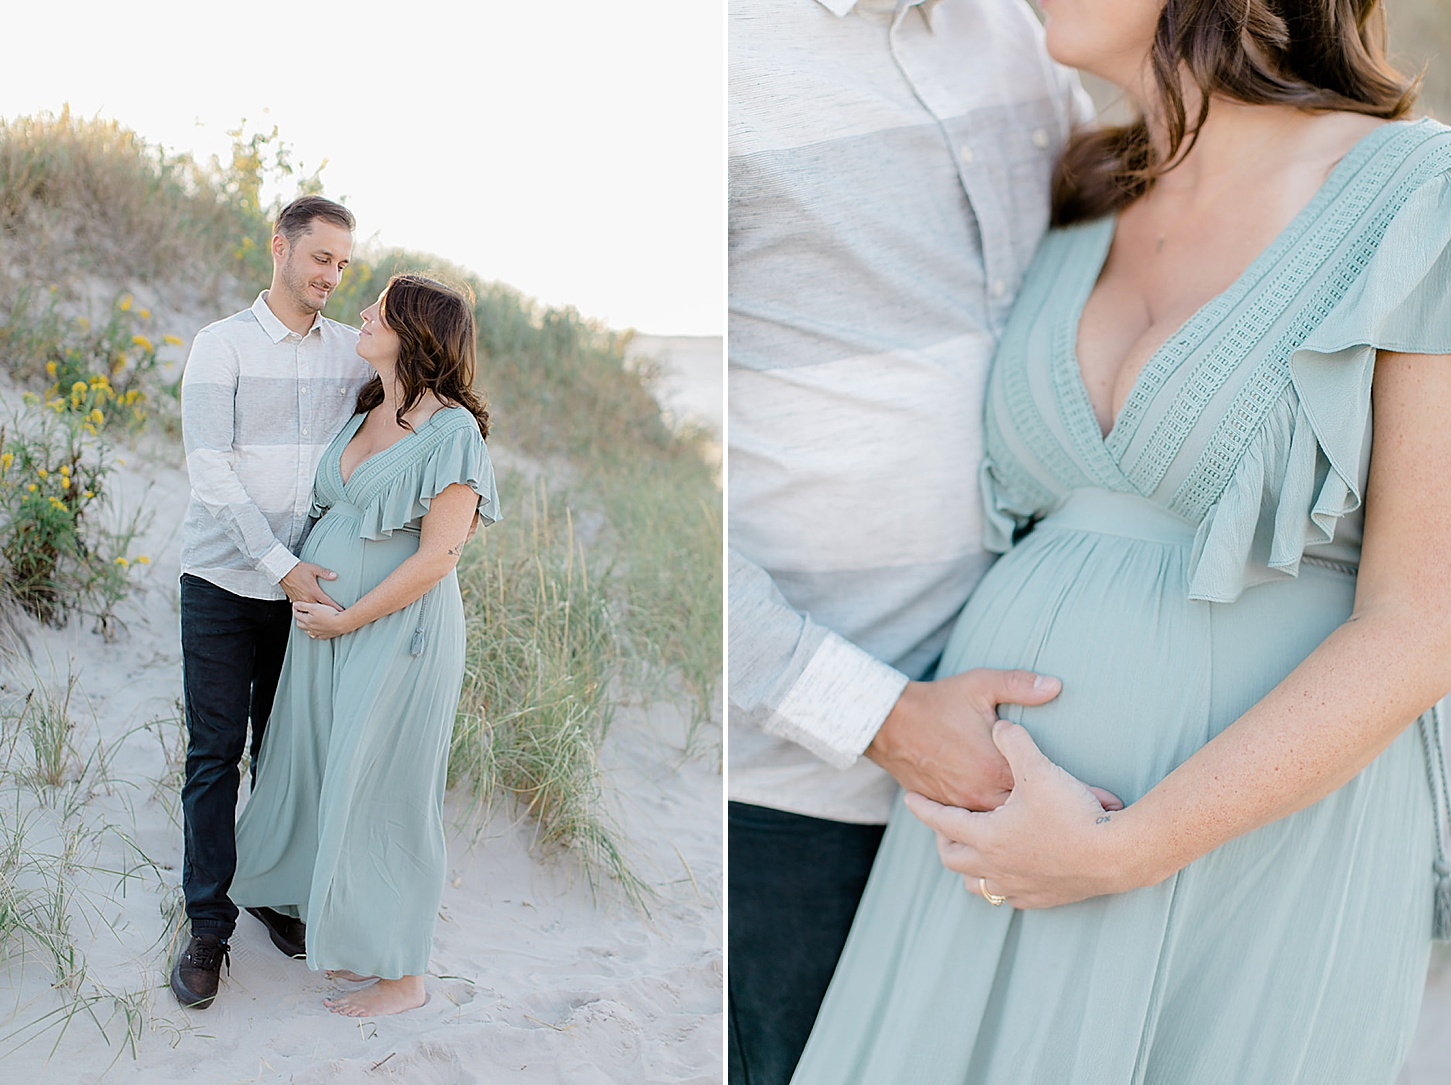 Ocean City NJ Maternity Portrait Photography by Magdalena Studios 0002